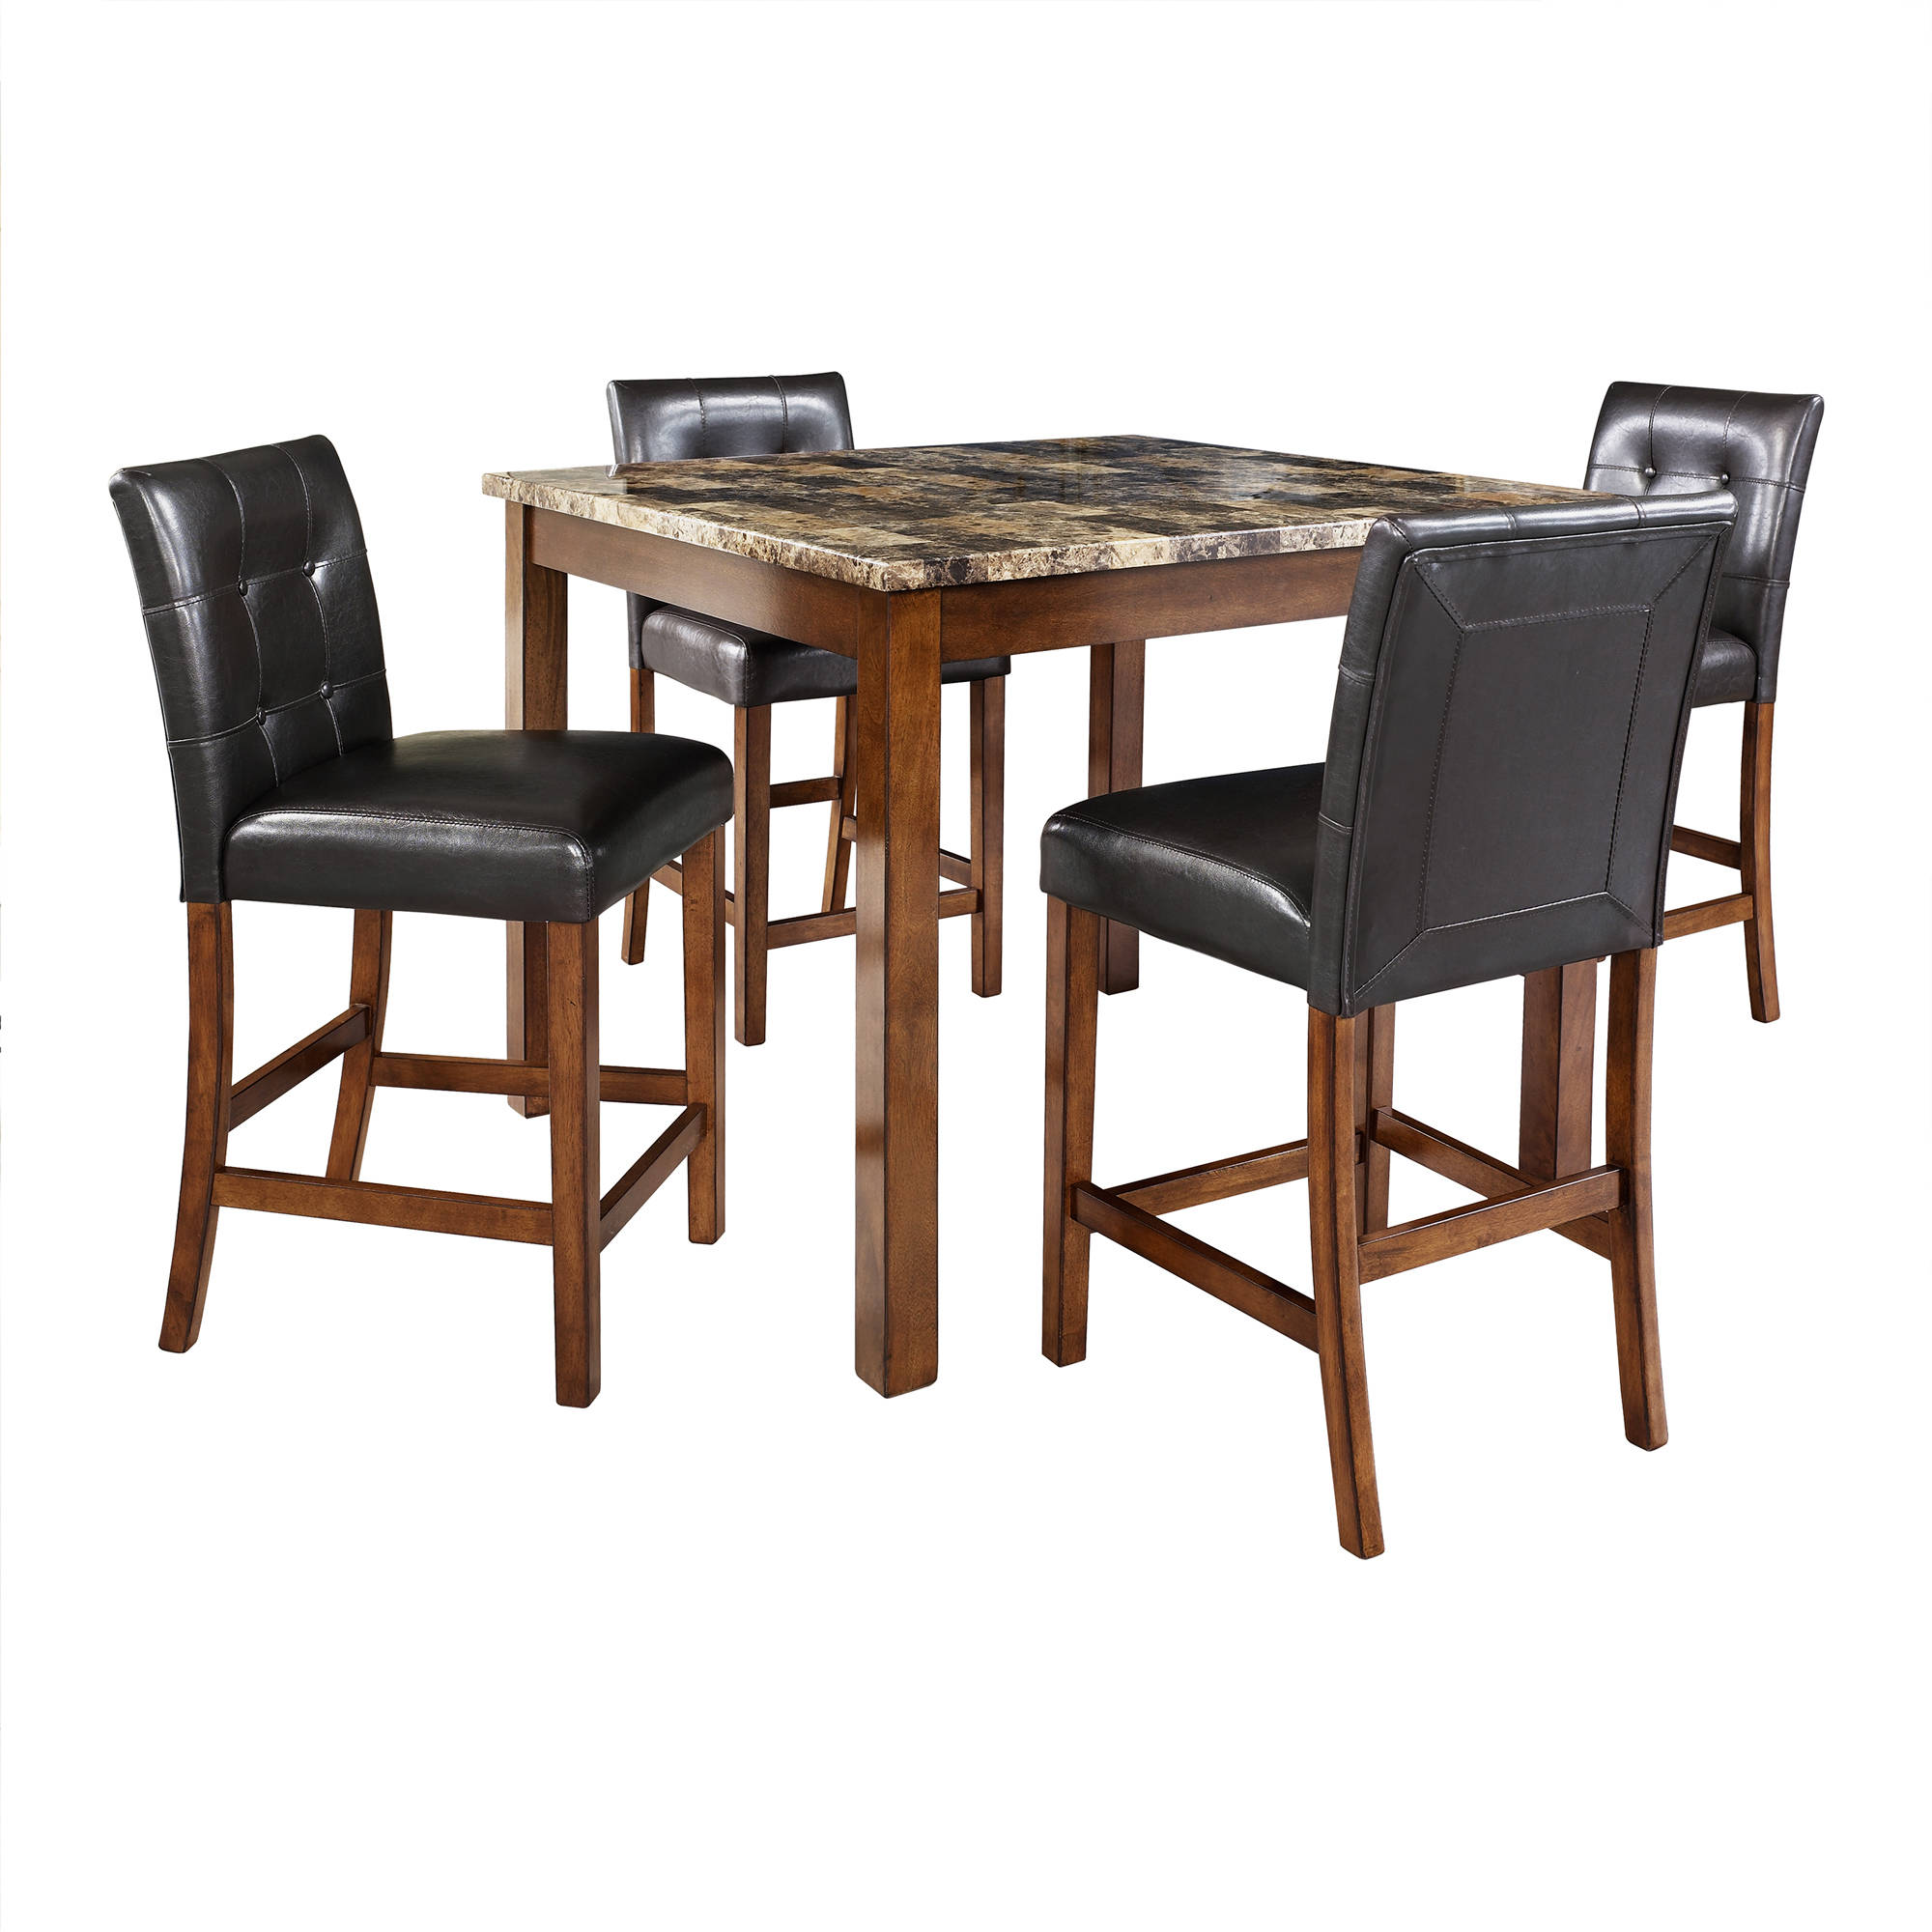 Charmant Dorel Living Andover 5 Piece Faux Marble Counter Height Dining Set,  Multiple Colors   Walmart.com